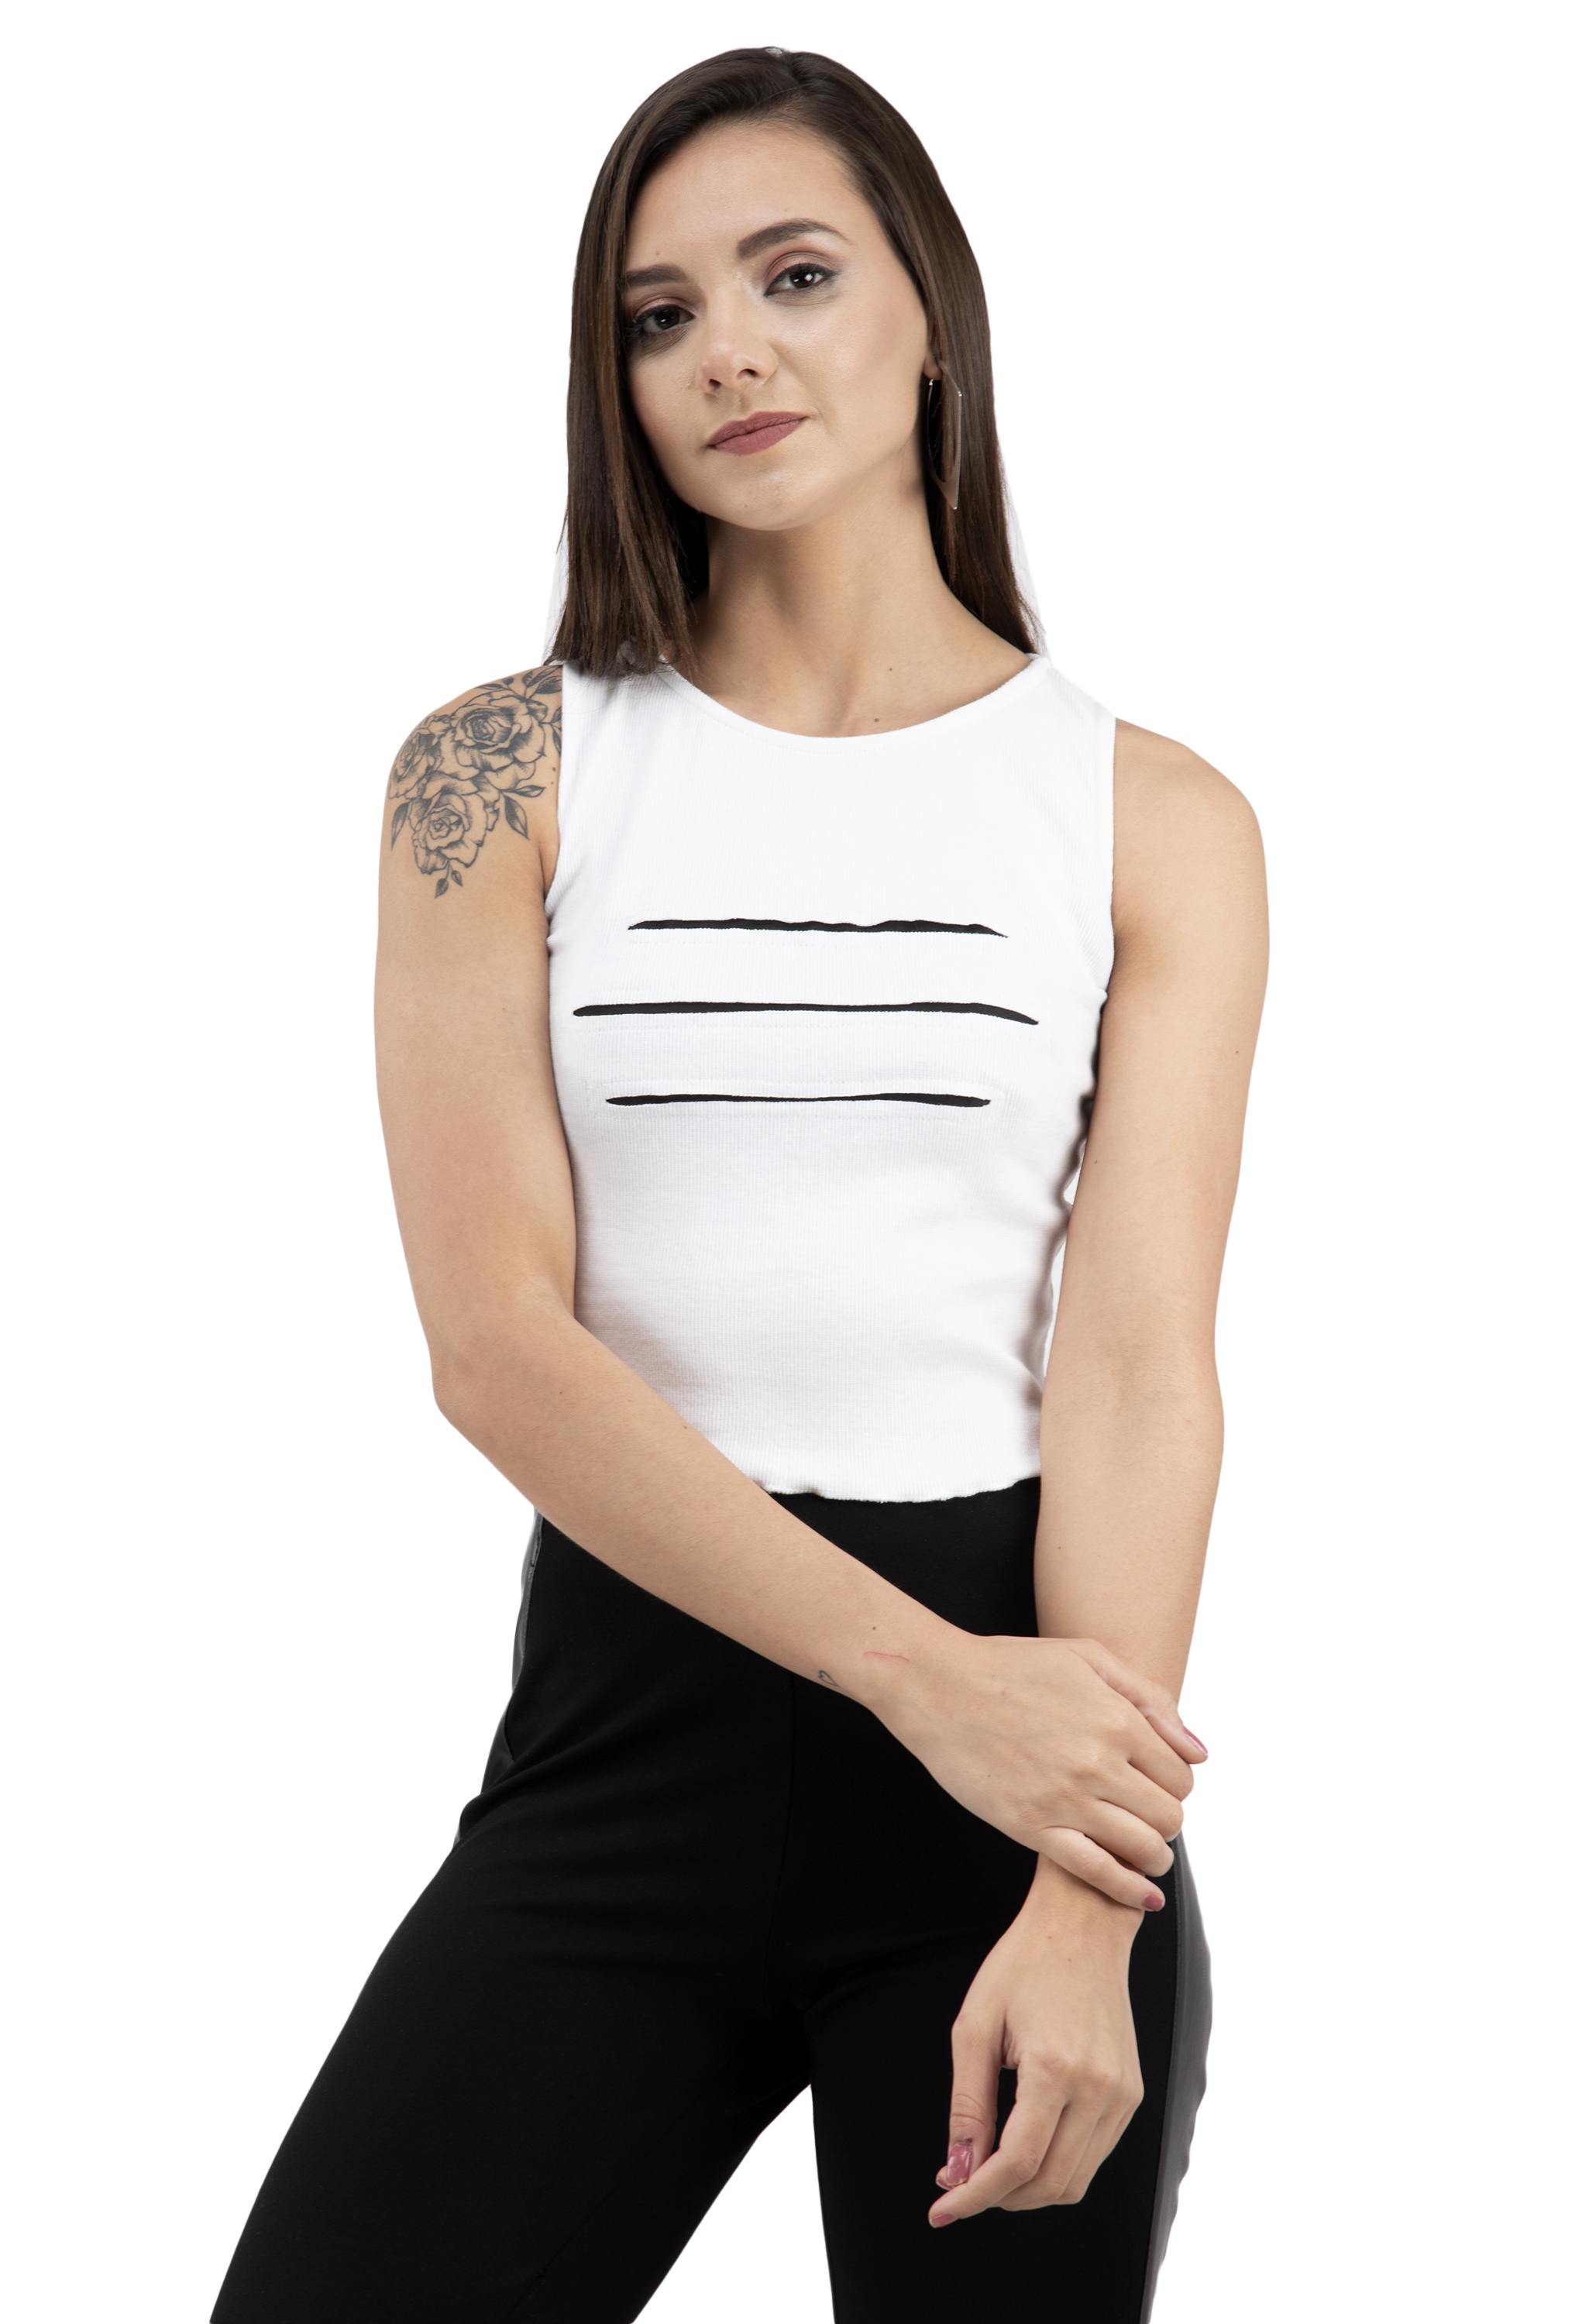 FAIRIANO Casual Sleeveless Solid Women's White Top